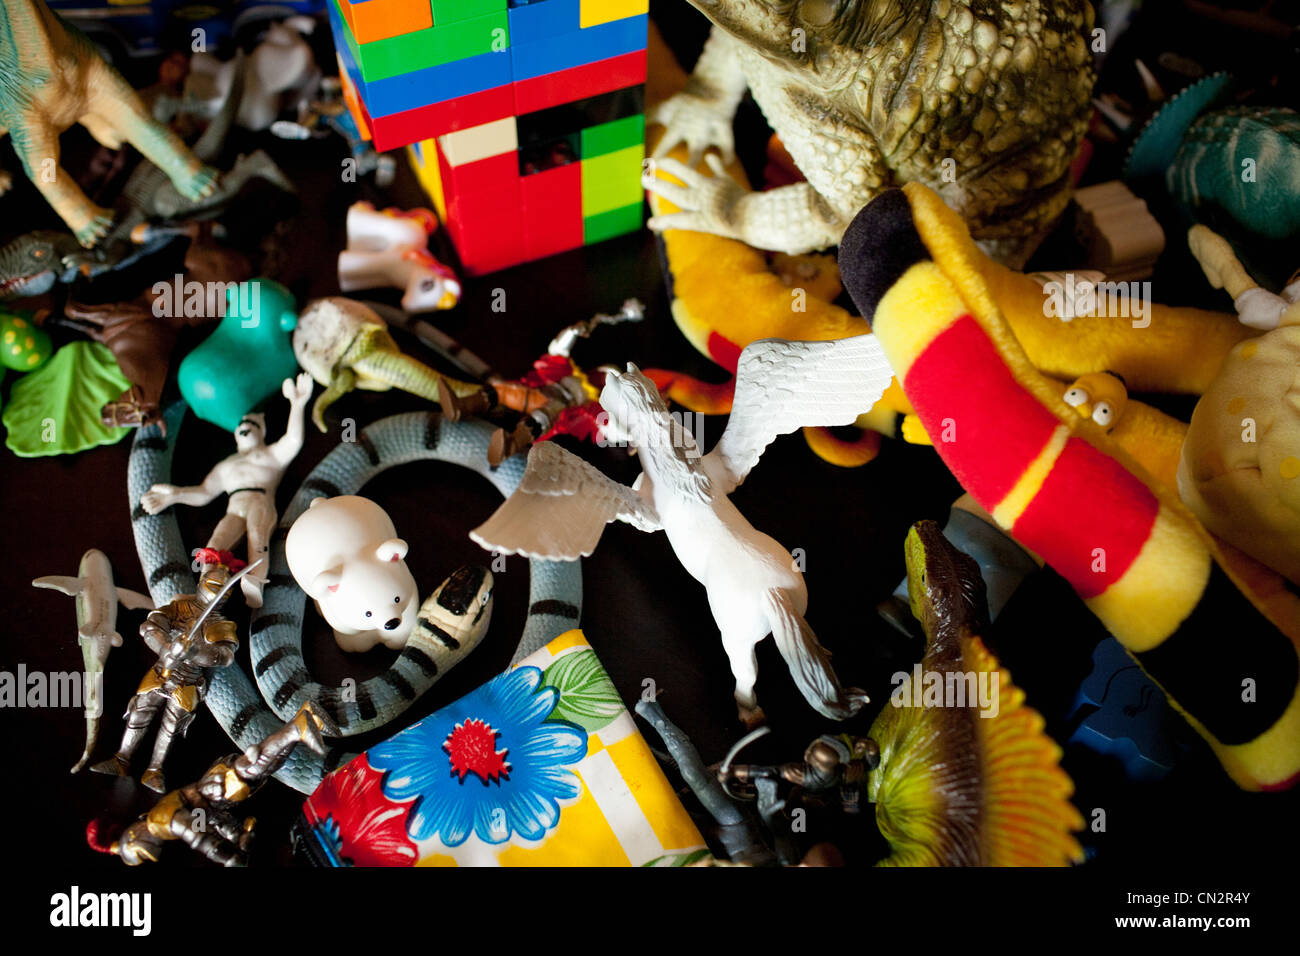 Childhood toys, close up - Stock Image